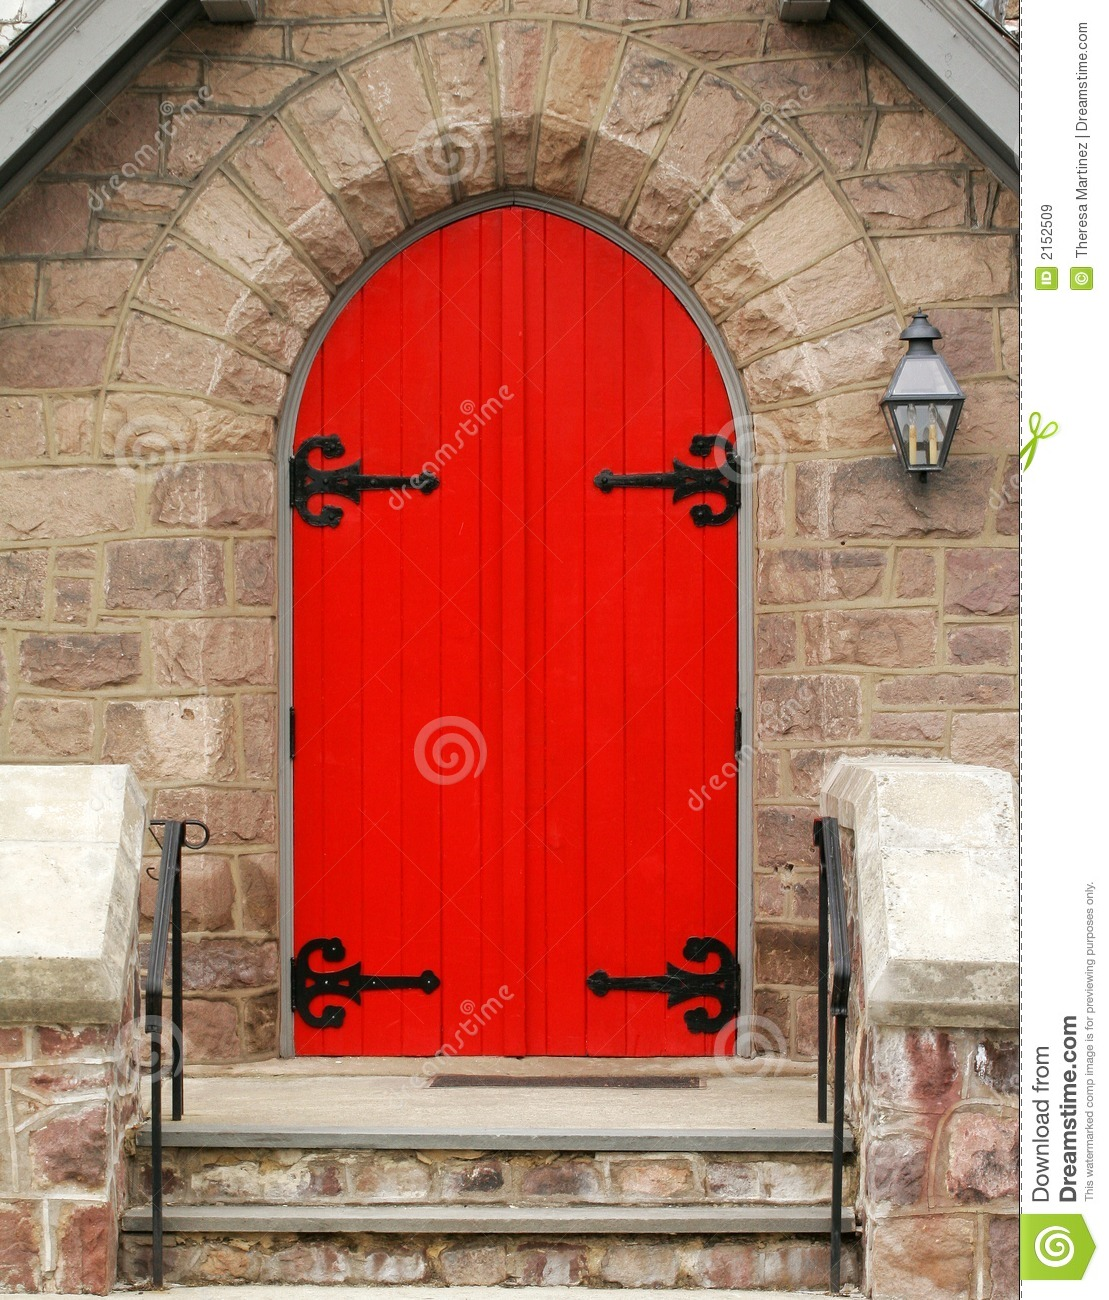 Red Church Door Royalty Free Stock Images - Image: 2152509